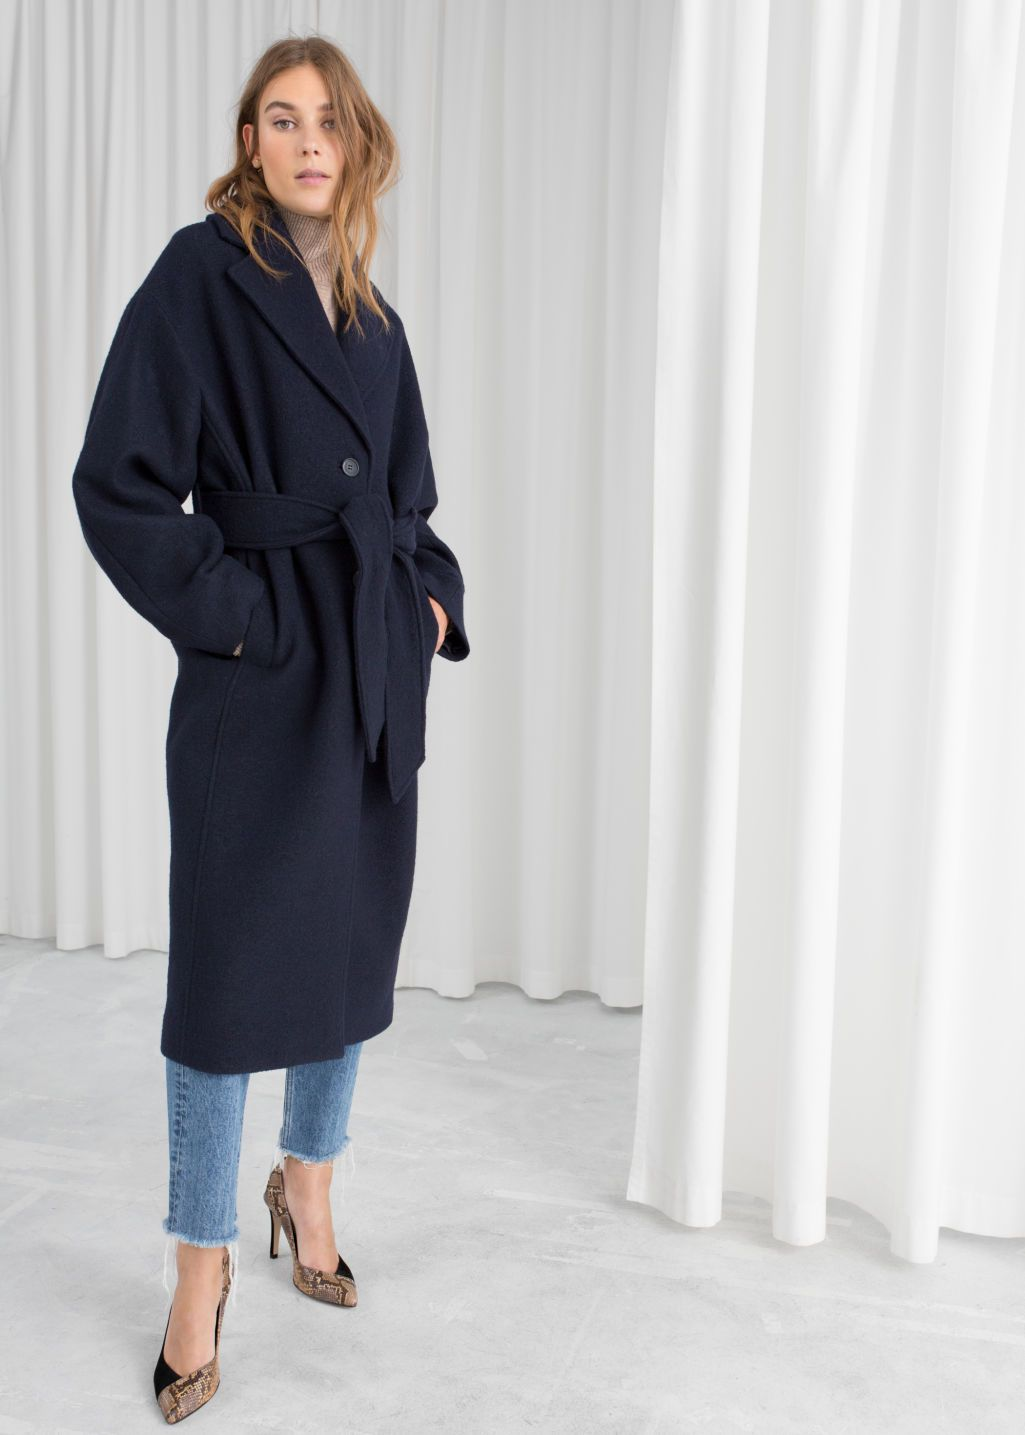 Belted Wool Coat Outfit